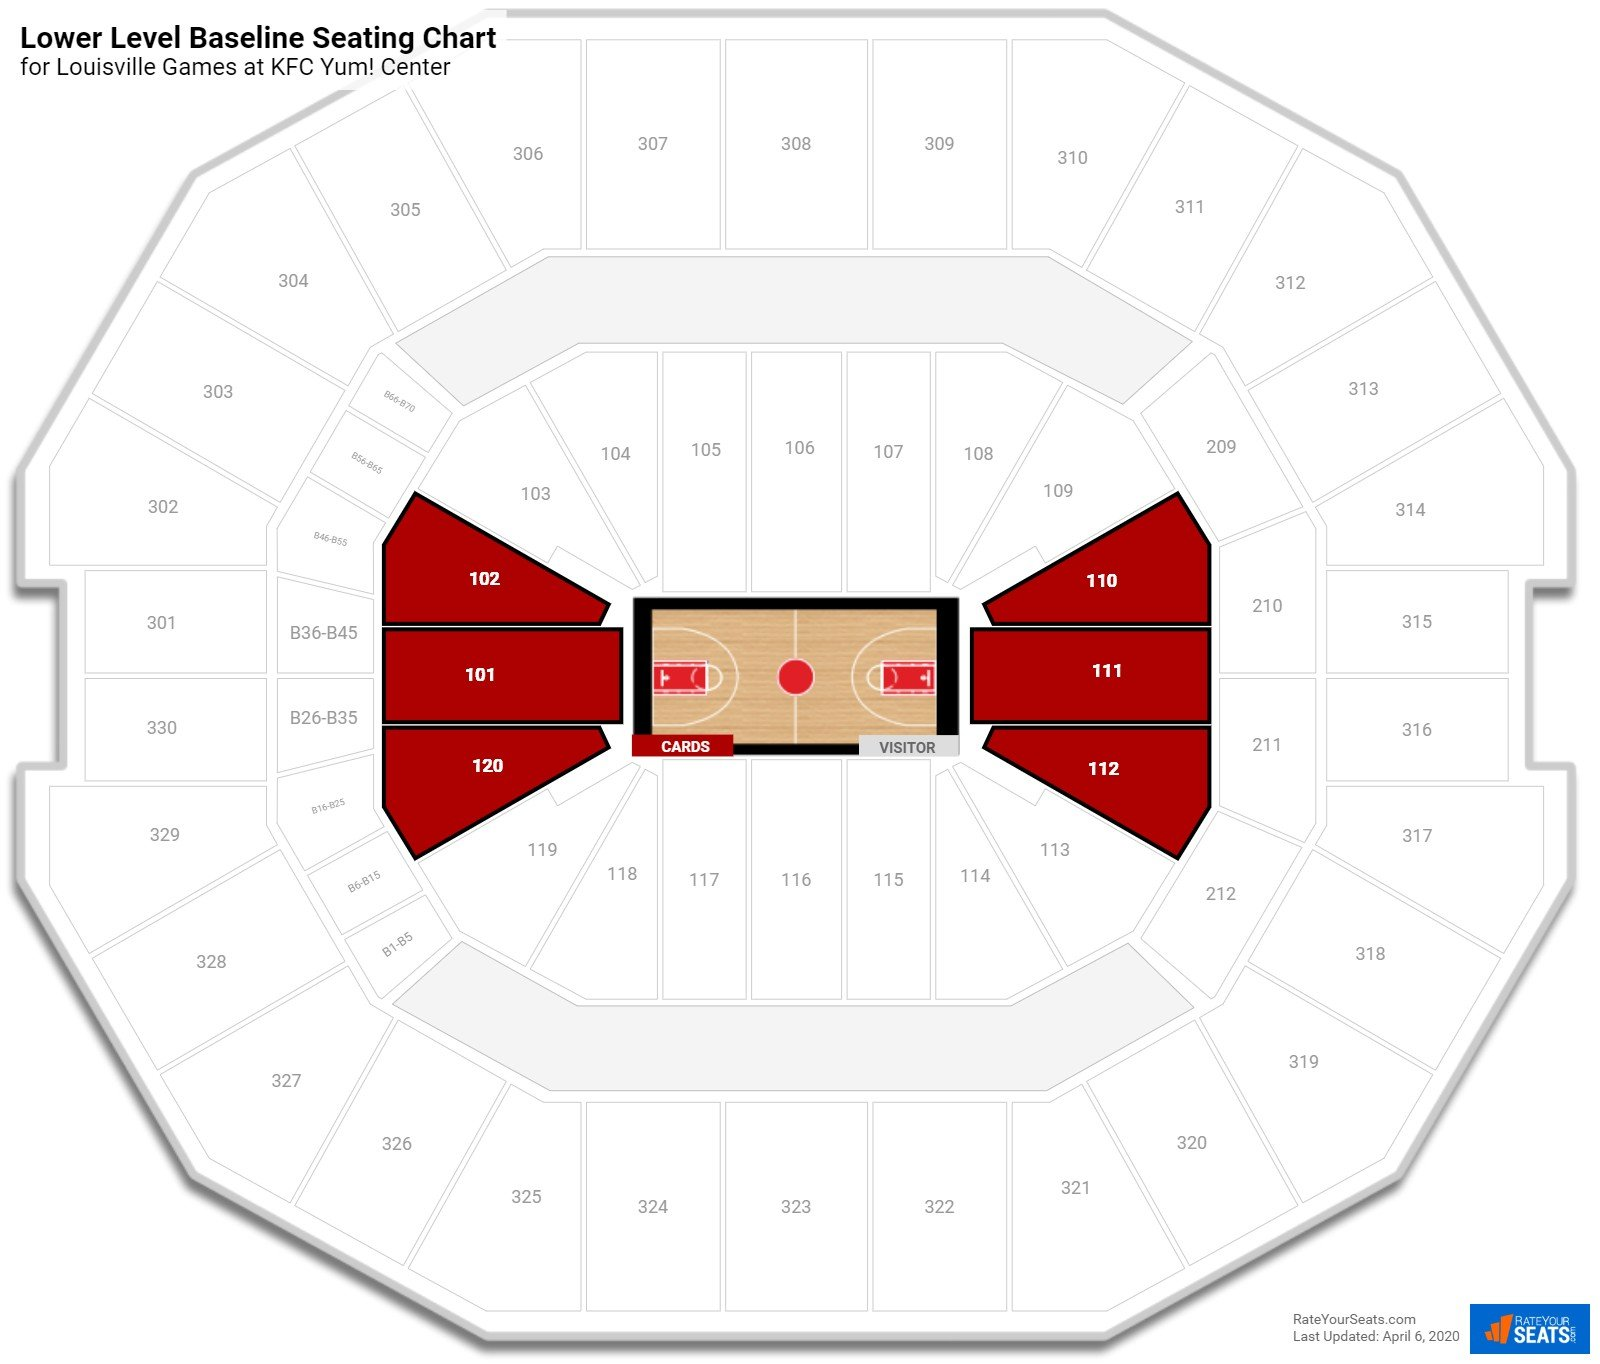 KFC Yum! Center Lower Level Baseline seating chart